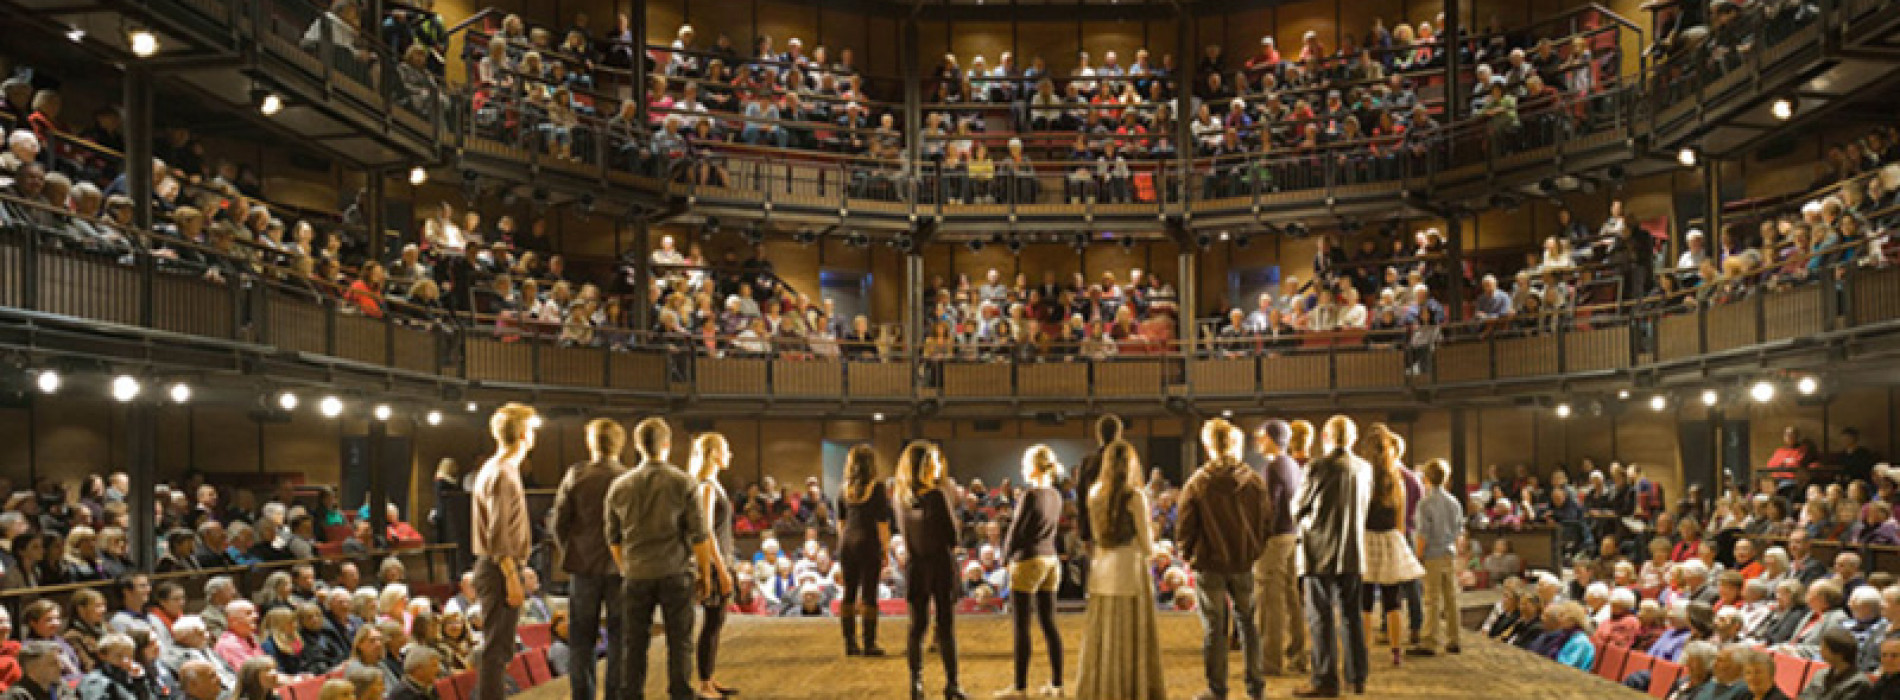 Royal Shakespeare Theatre: how accessible is it?